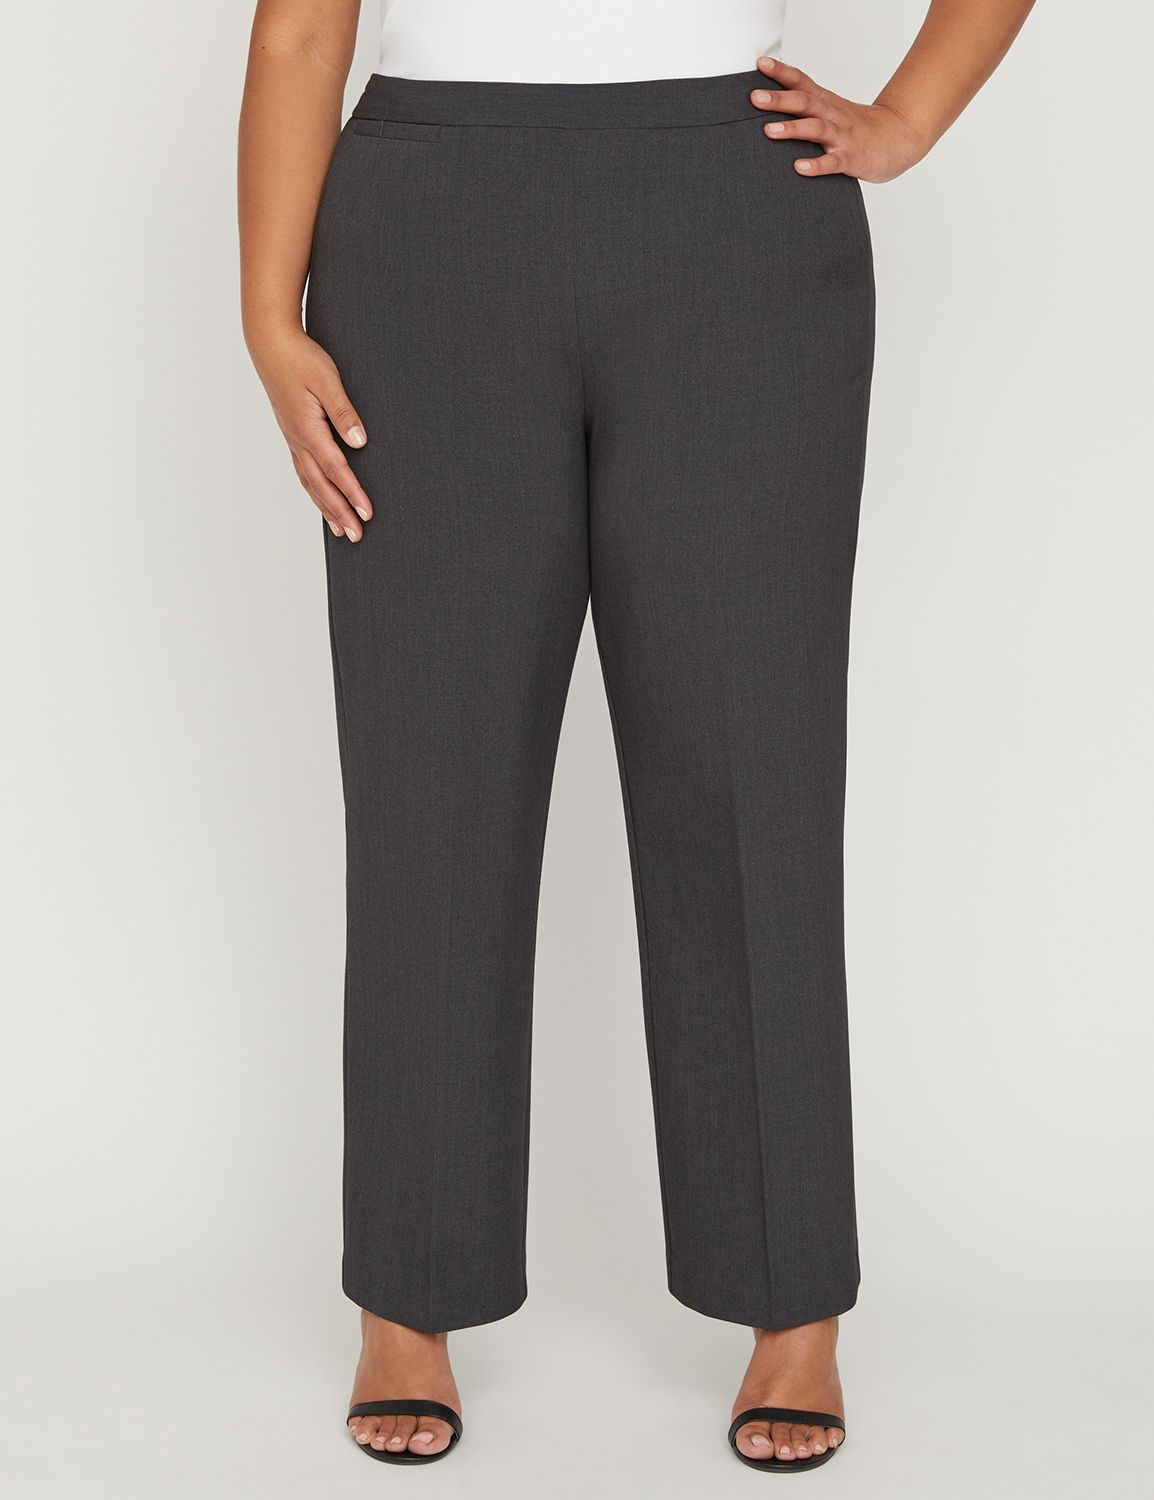 Heathered Refined Pant Heathered Refined Fit Pant MP-300044106